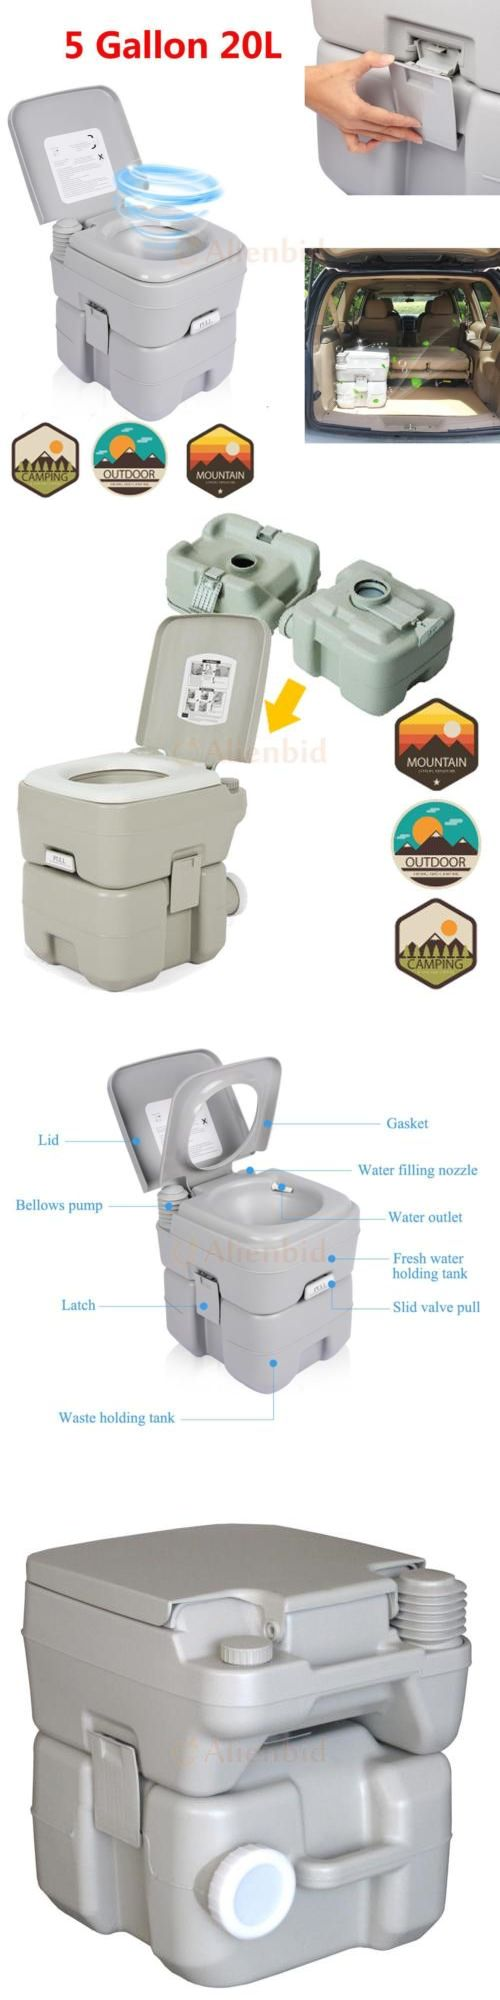 Portable Toilets and Accessories 181397: Portable Outdoor Hiking Camping Travel 20L 5 Gallon Toilet Flush Porta Wc BUY IT NOW ONLY: $49.99